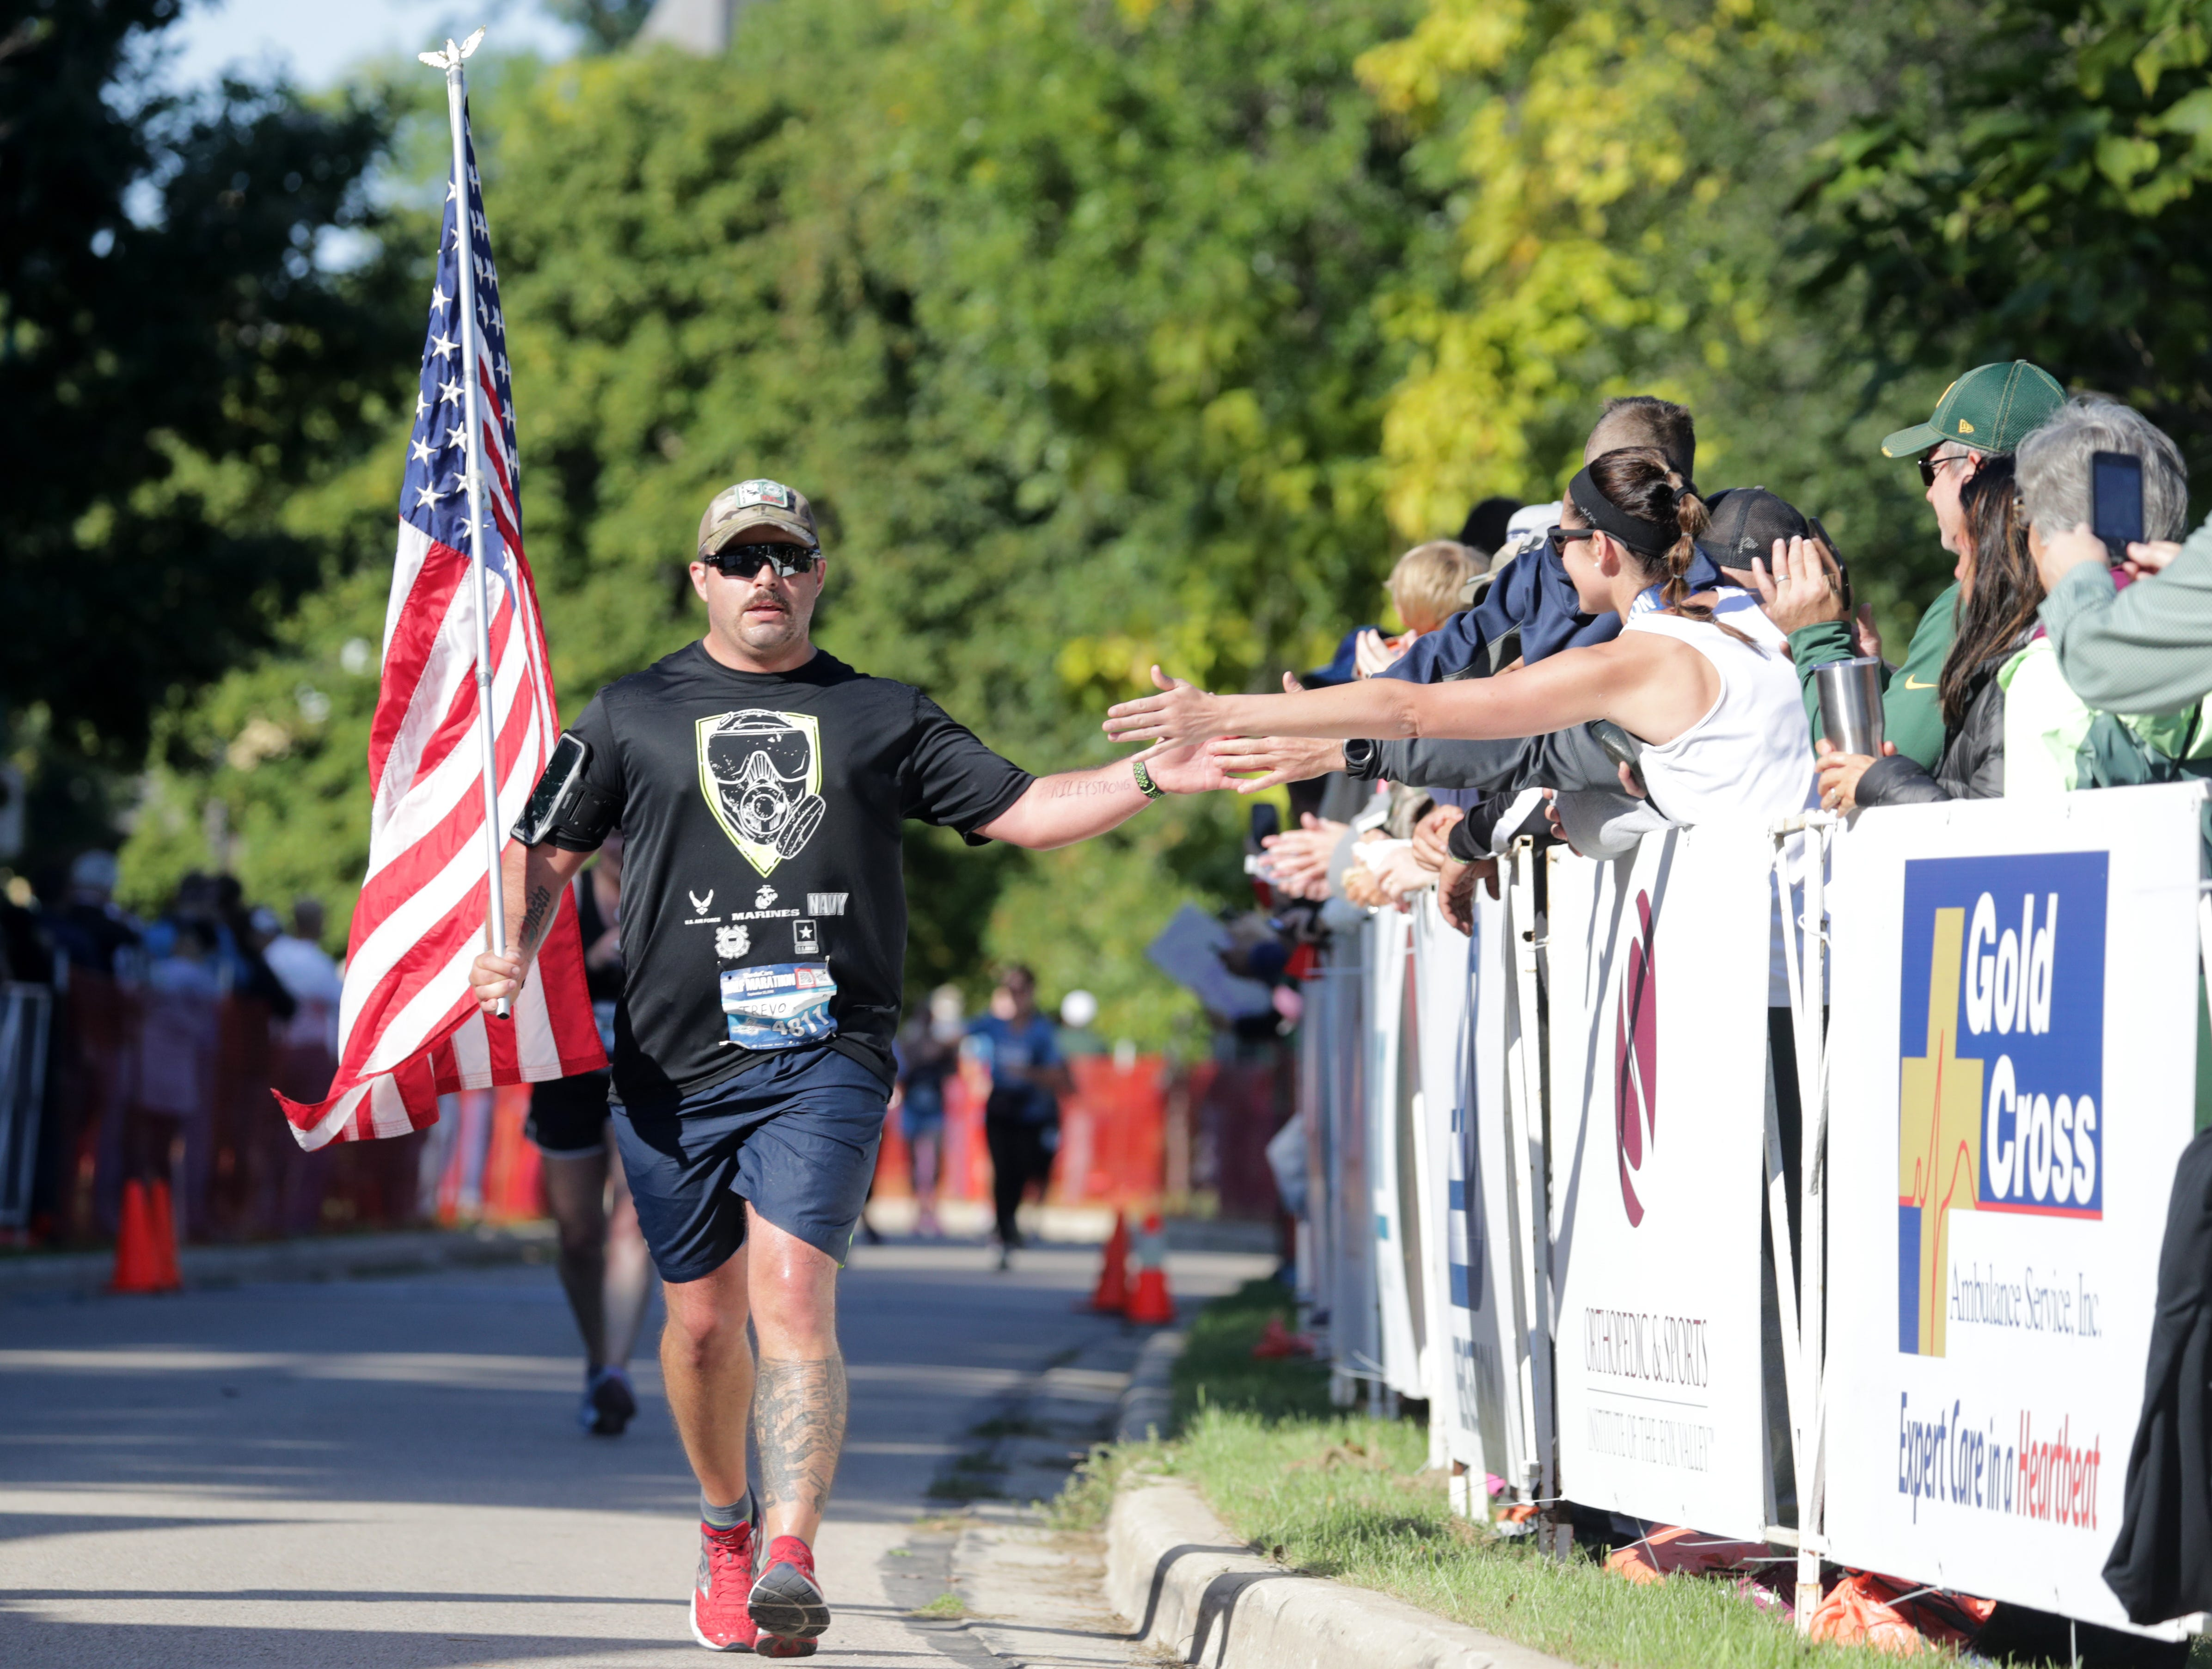 Trevor Anderson crosses the finish line in the half marathon event during the 28th annual Community First Fox Cities Marathon on Sept. 23, 2018, in Neenah, Wis.